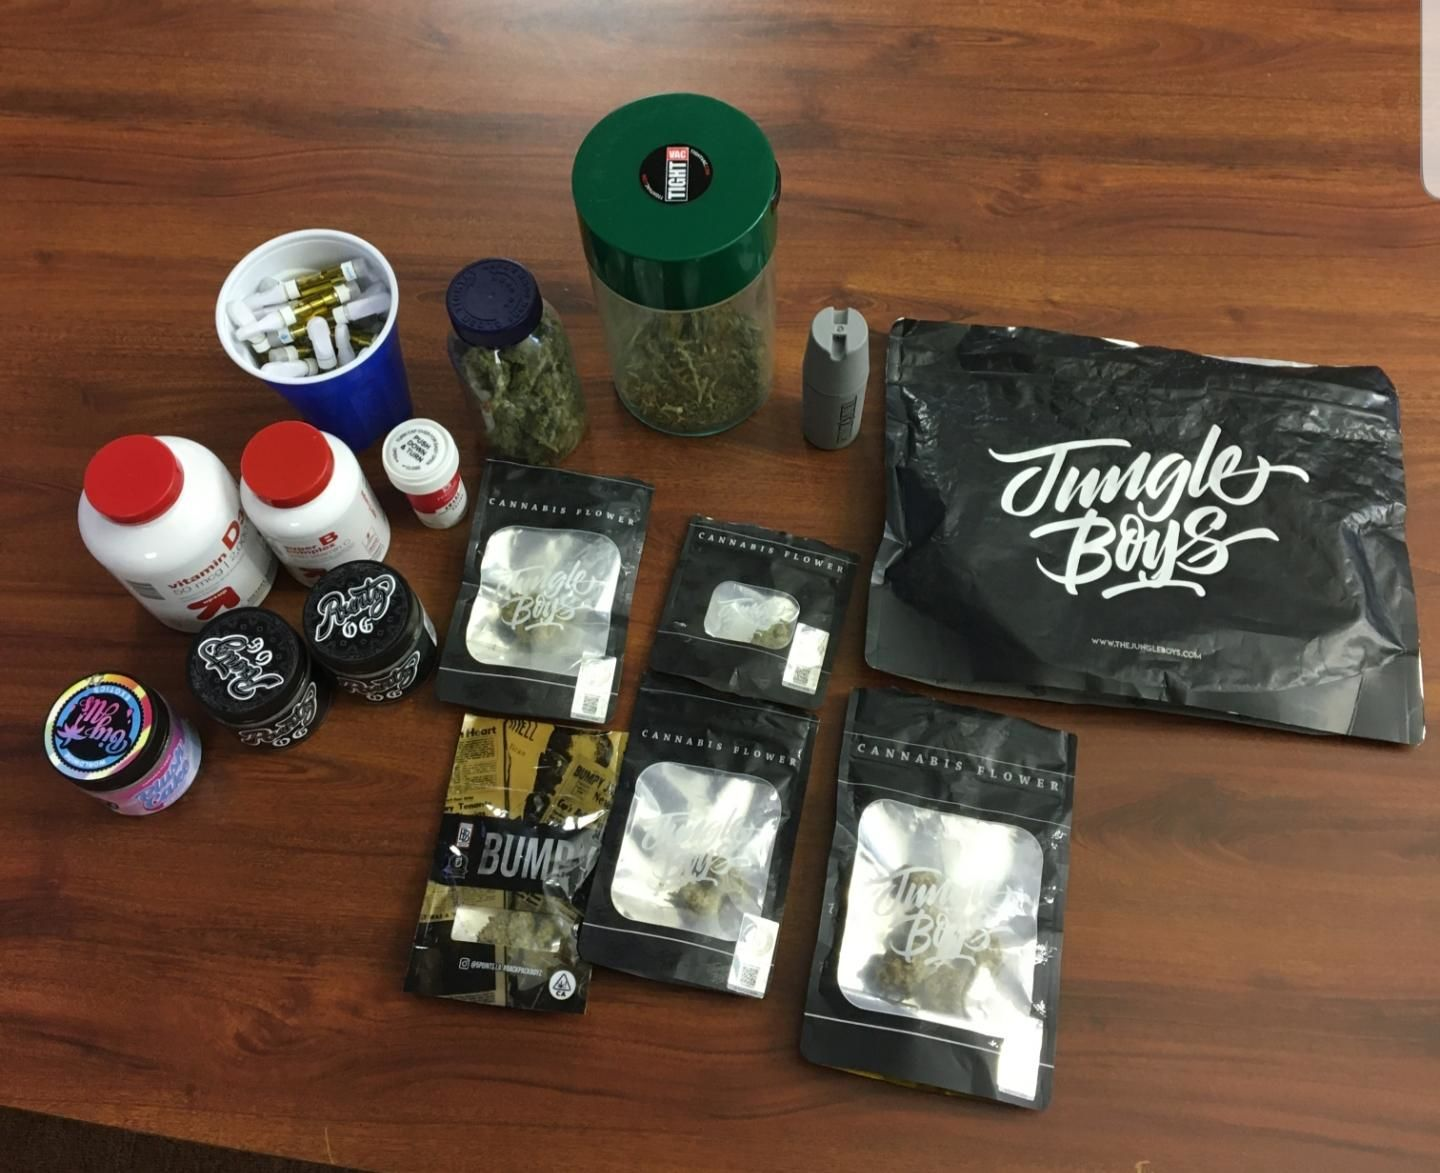 The Butler County Undercover Regional Narcotics Taskforce and US Postal Inspectors say they seized 952 tetrahydrocannabinol (THC) vaporizer cartridges, about 7 pounds of marijuana, hashish wax, $2,723 in cash, as well as THC products disguised as lip balm, Tootsie Rolls, cannabis syrup, and gummies. (Photo courtesy Butler County Sheriff's Office)